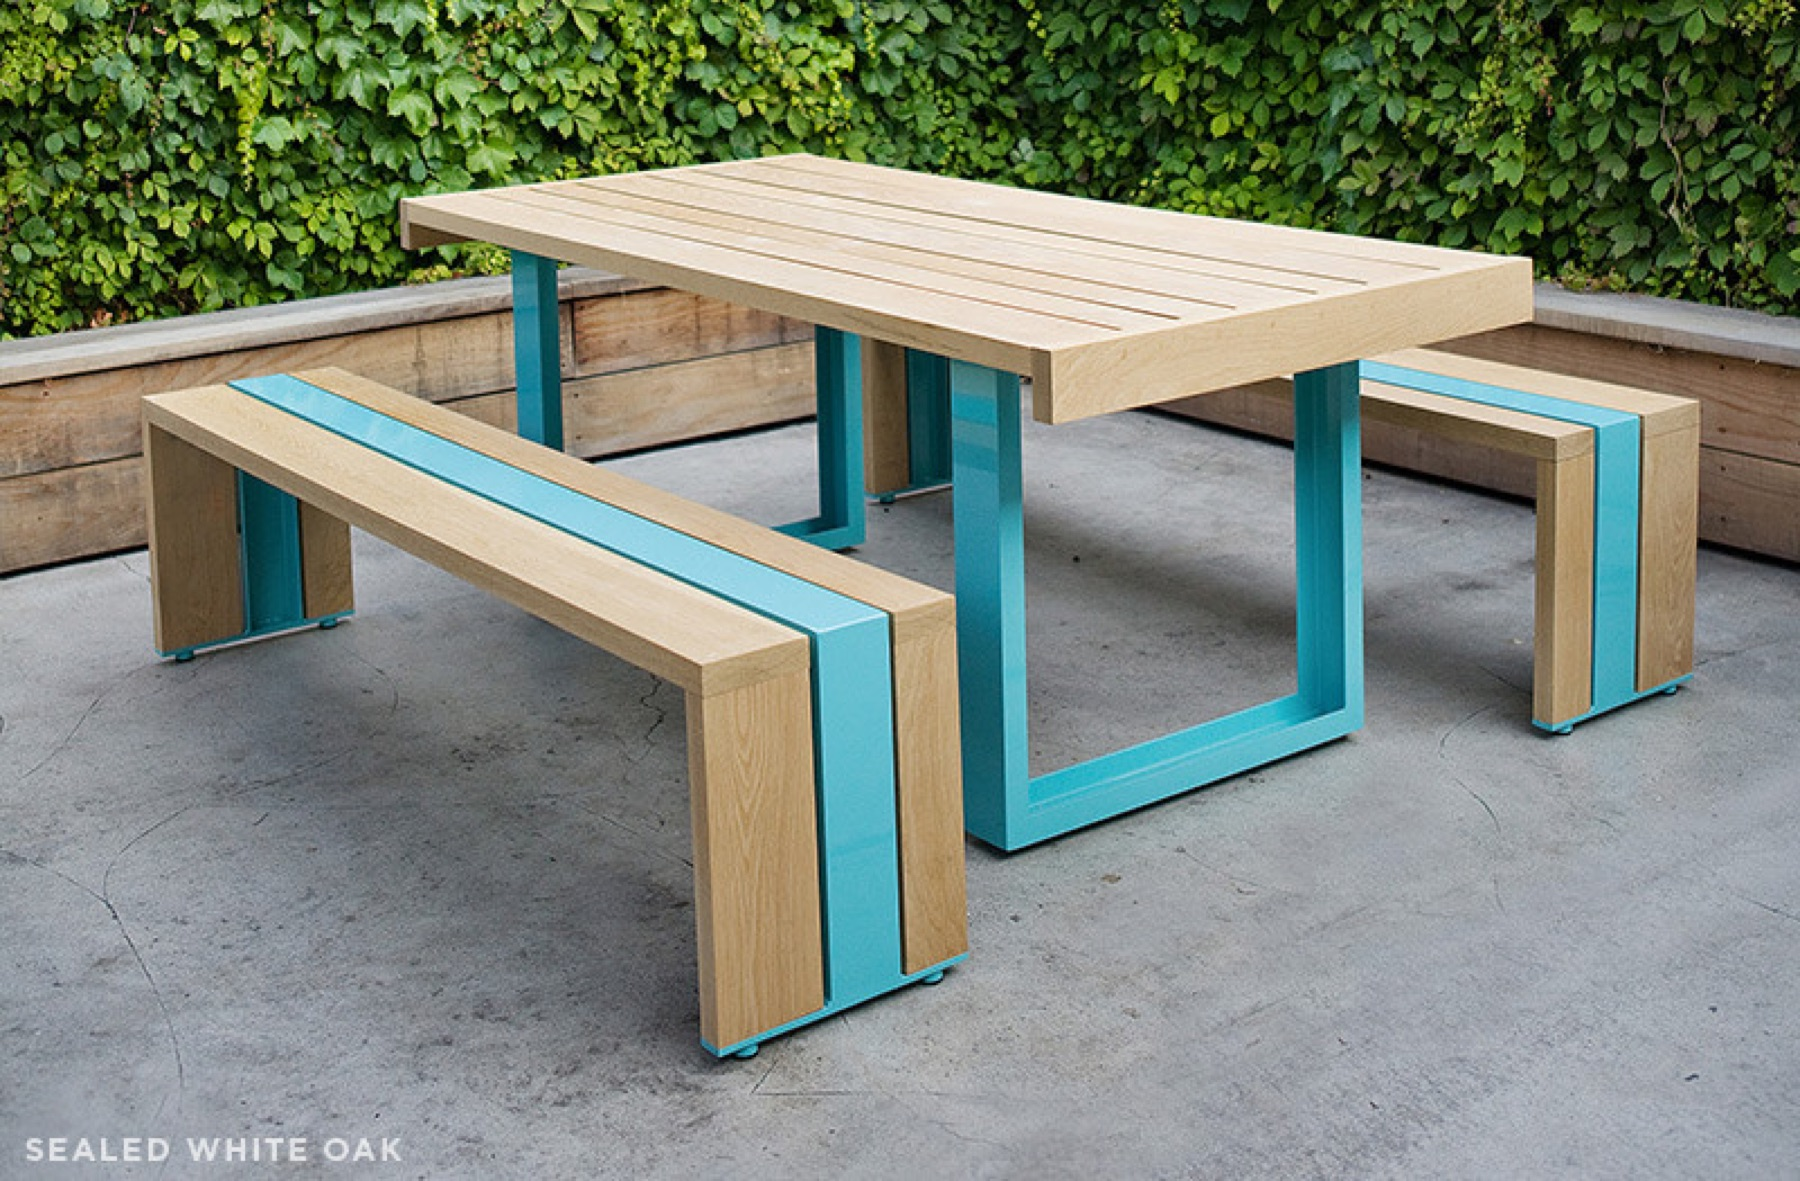 The SR Outdoor Table Set in American white oak and powder-coated aluminum from Scout Regalia. Photograph by Dylan + Jeni.